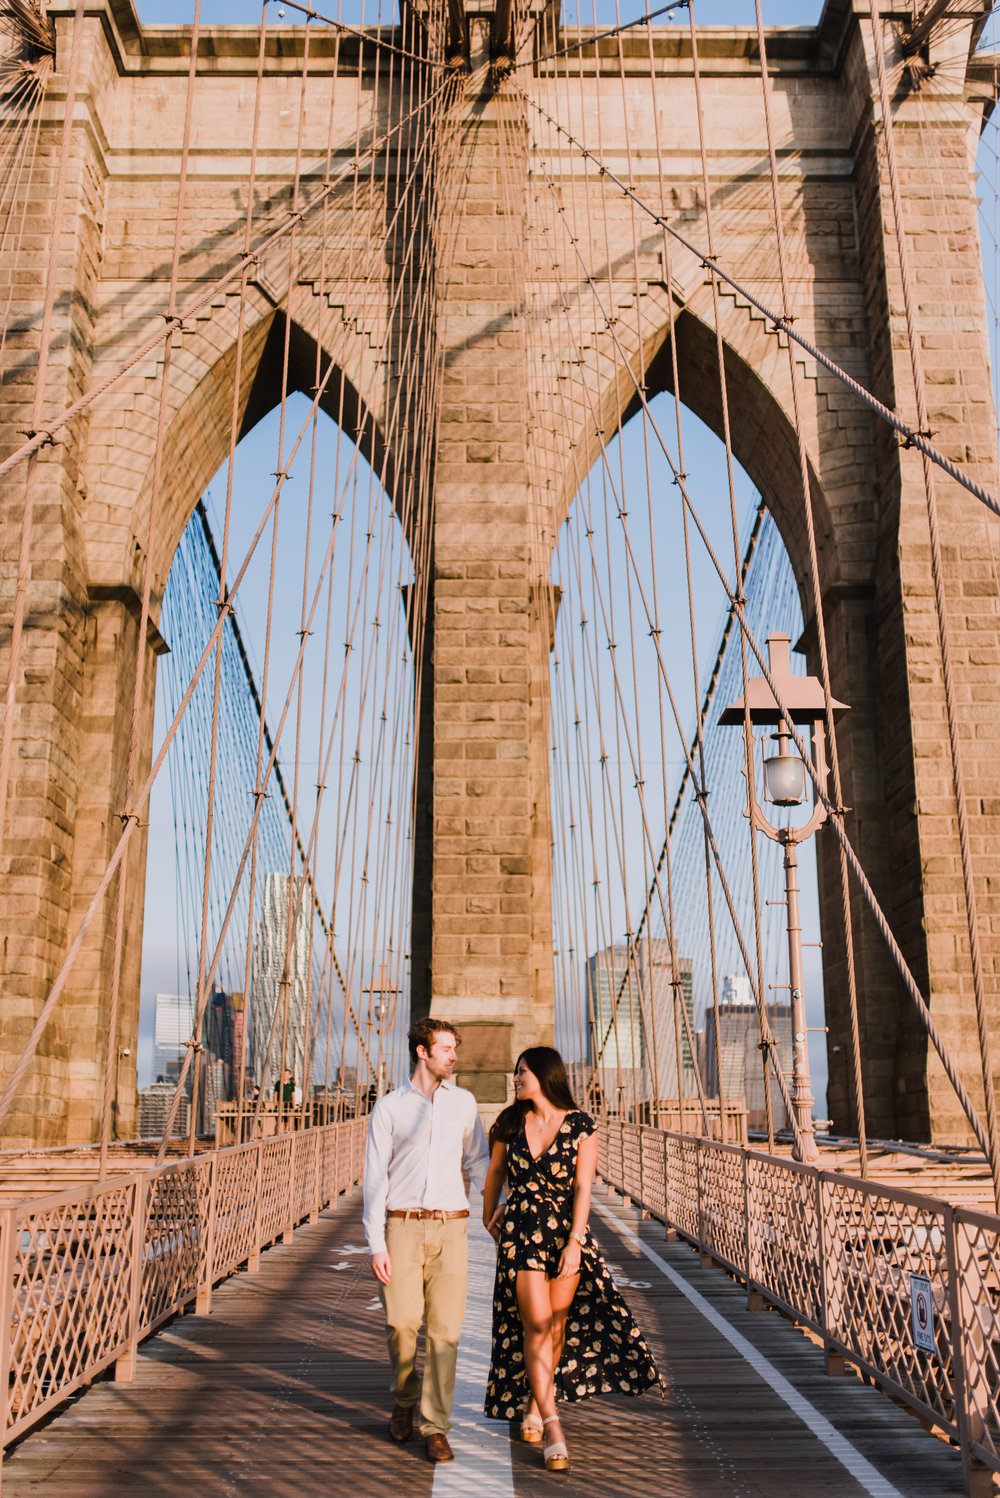 Brooklym Bridge engagement photography, NY wedding photographer, NYC elopement photographer, NYC wedding photographer (7).jpg